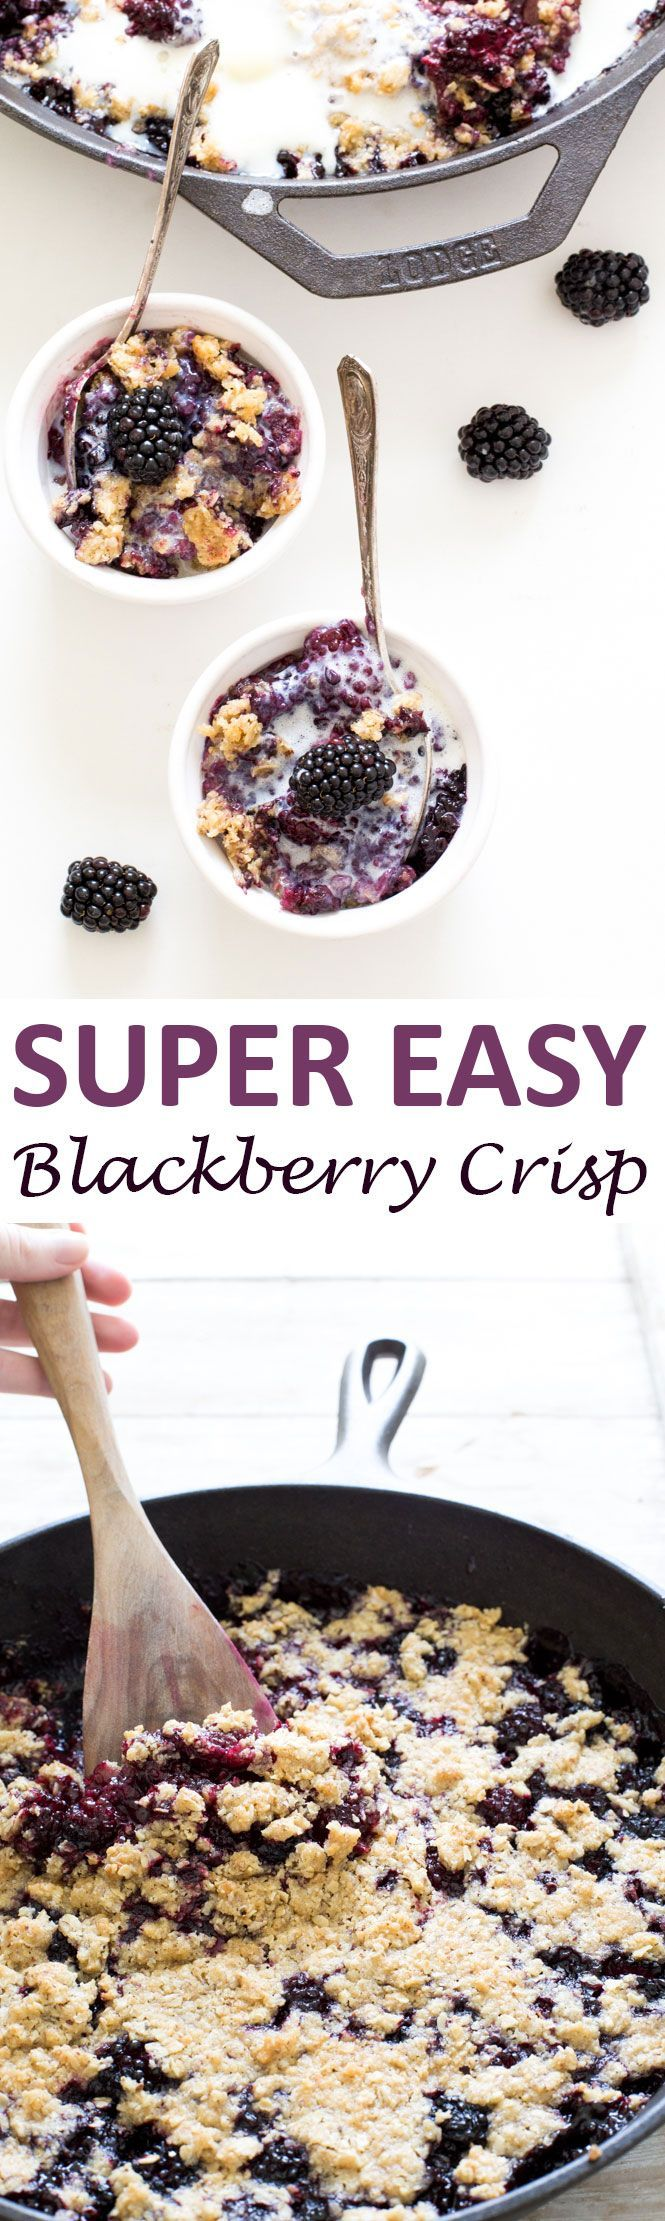 Super Easy Blackberry Crisp. Warm and gooey with a crispy oat topping. Top with vanilla ice cream for an amazing dessert. Takes less than 10 minutes to throw together! | chefsavvy.com #recipe #blackberry #crisp #breakfast